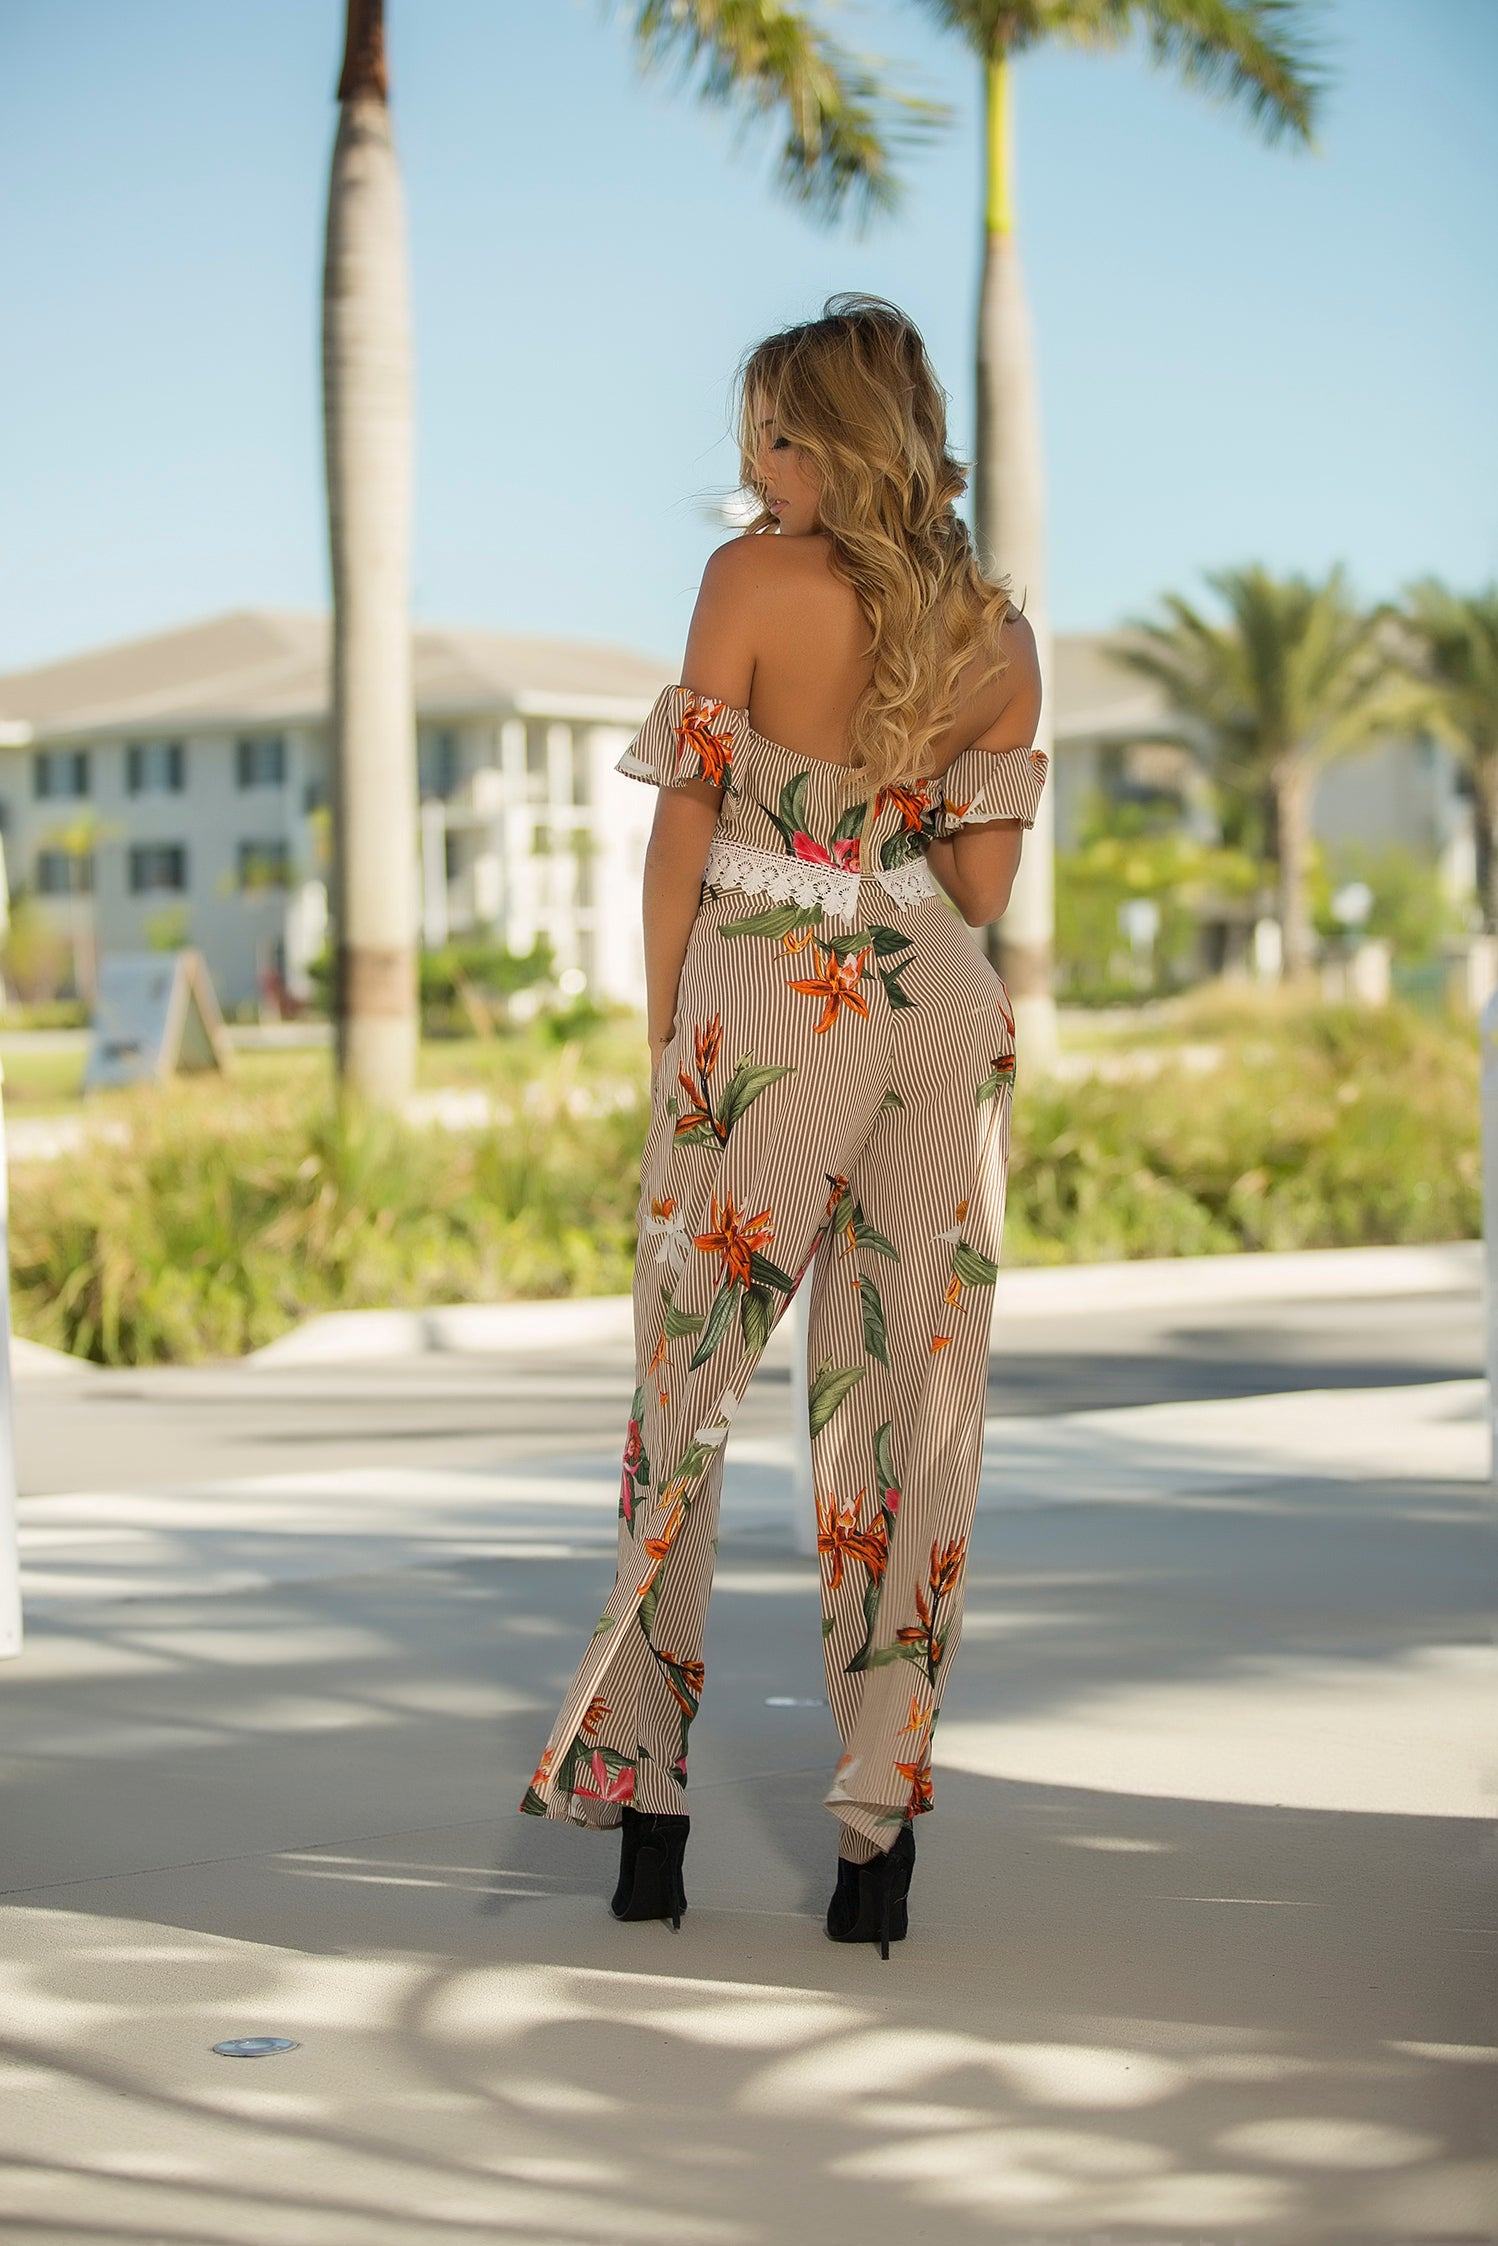 Adriel - Floral Prints and Stripes Pant Set - Semai House Of fashion